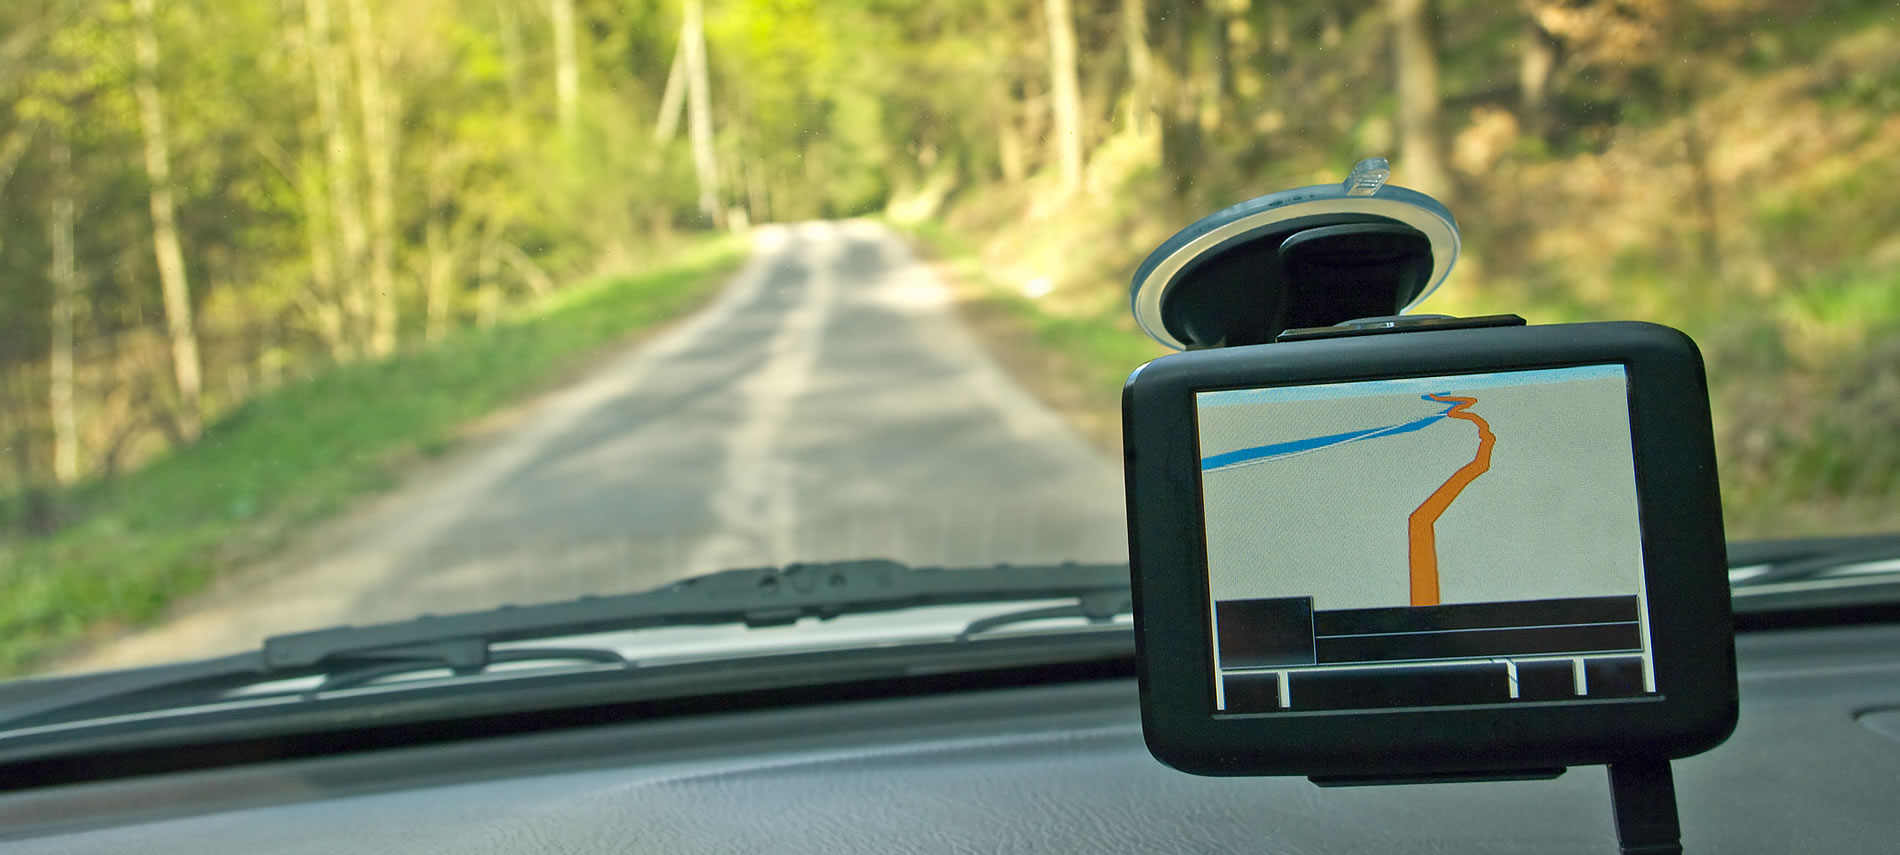 View through a windshield and GPS and a rolling road ahead surrounded by green trees